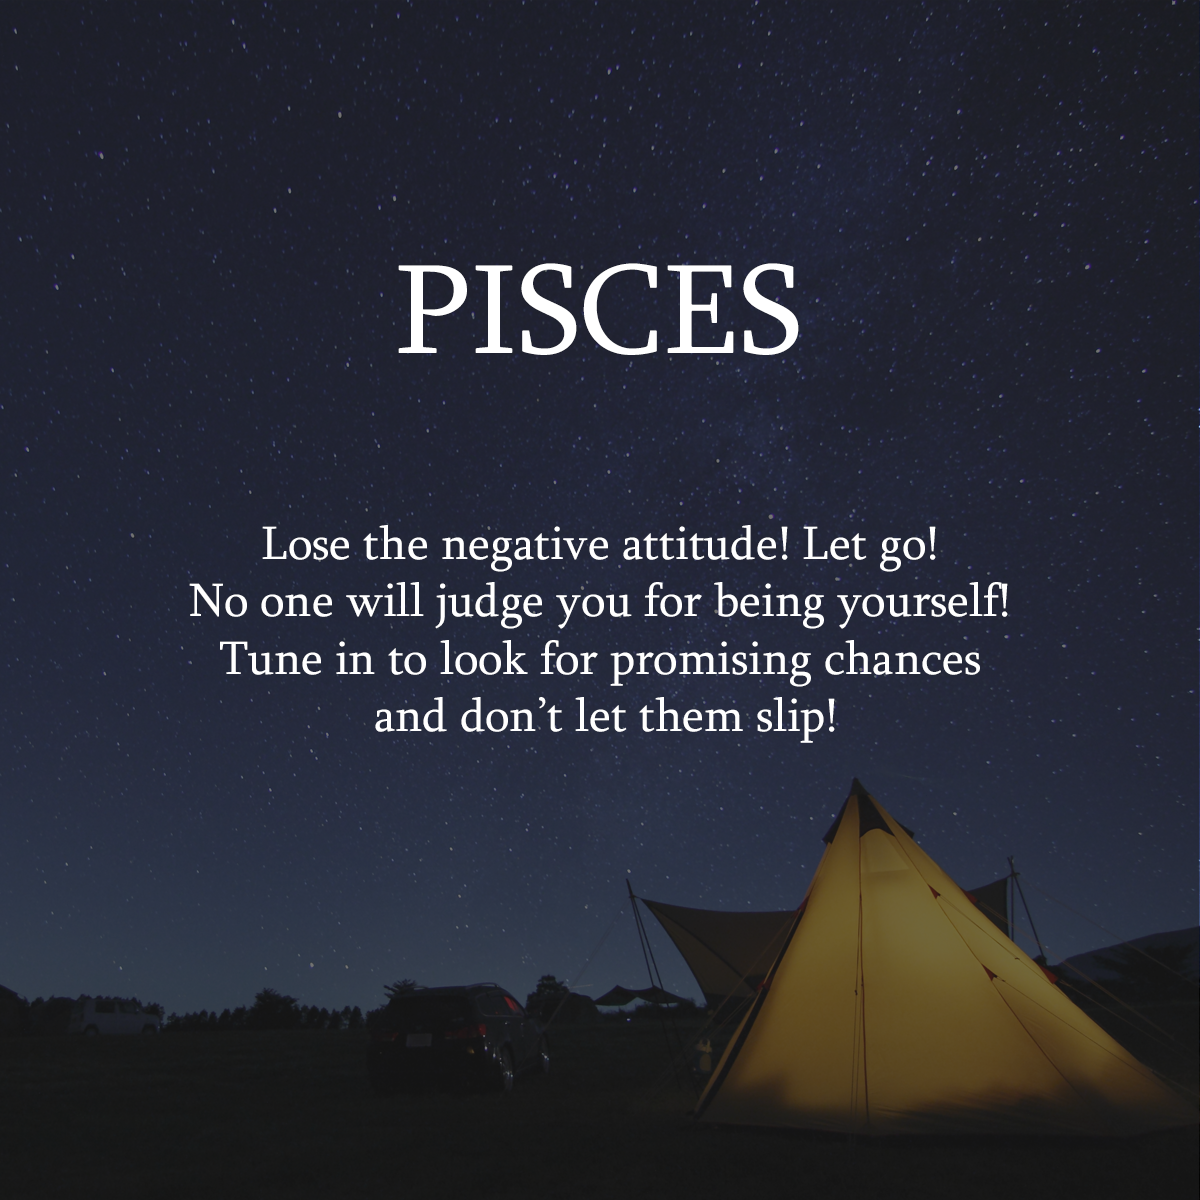 Pin By Cristynni 13 On November Horoscope Pisces Quotes